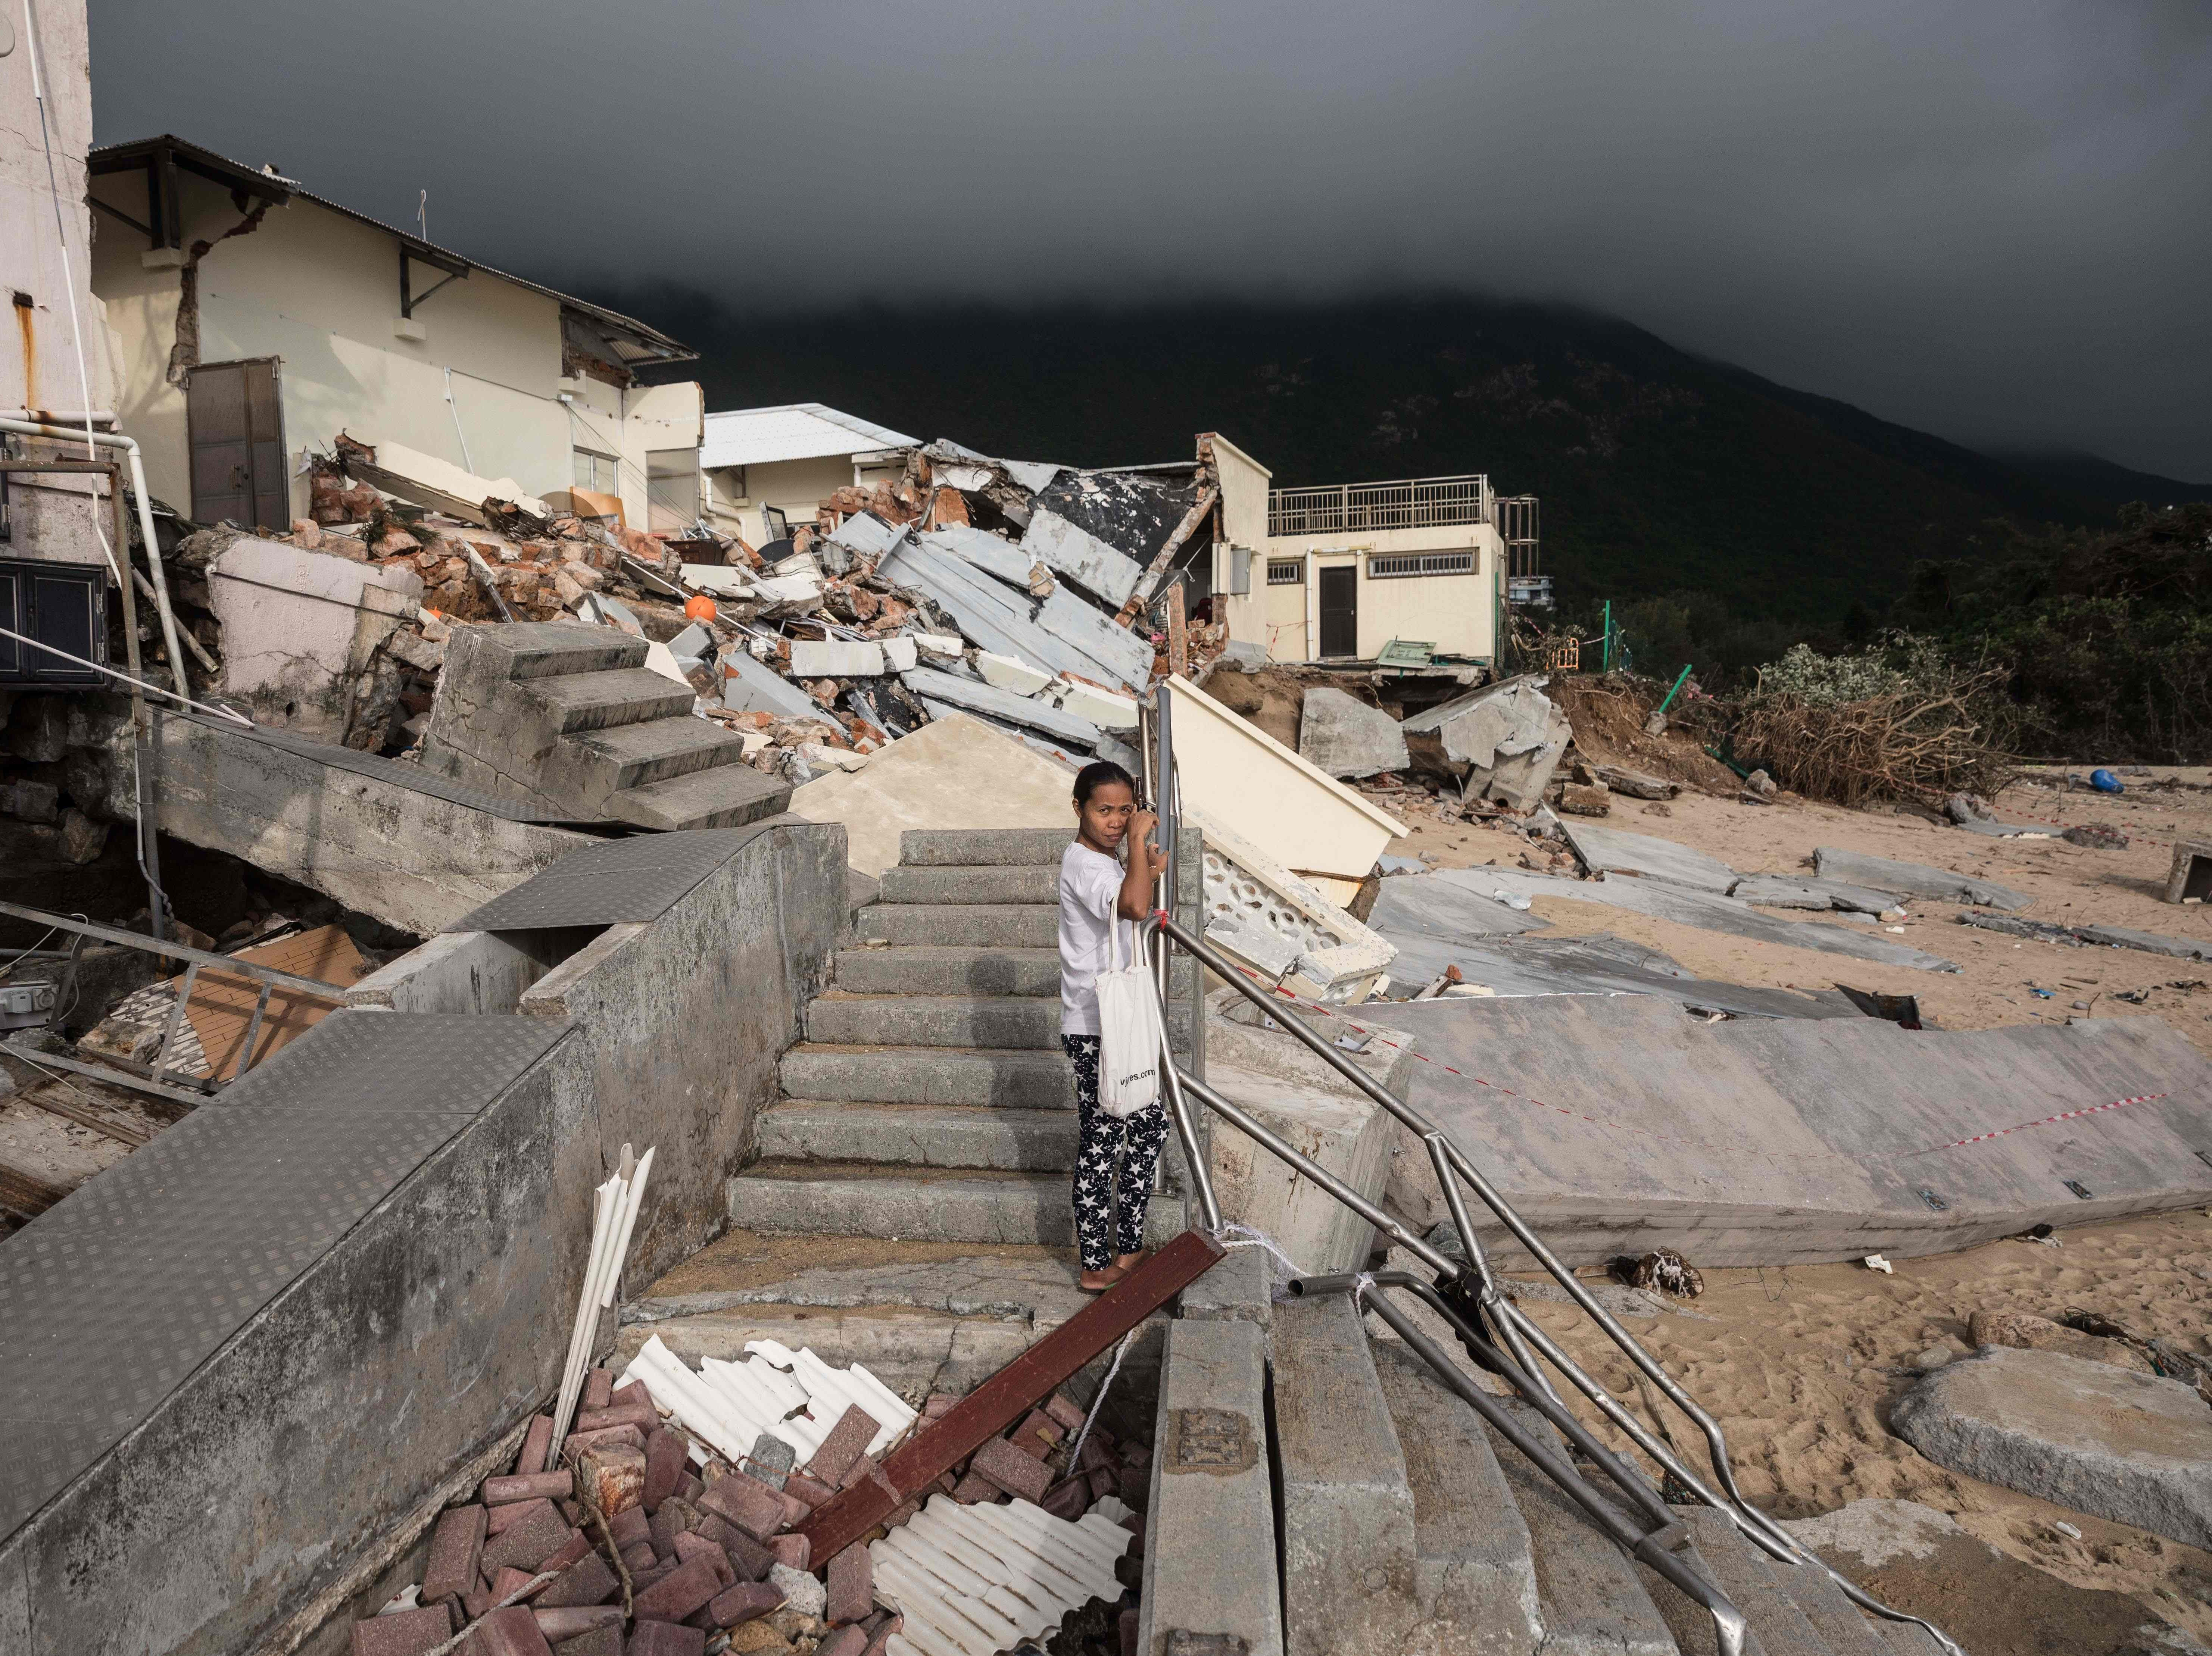 A woman stands before a collapsed building of a school next to a beach in the aftermath of Typhoon Mangkhut in the coastal village of Shek O in Hong Kong on Sept. 18, 2018. Hong Kong was still struggling to get back on its feet, with a massive clean-up operation to clear broken trees, repair torn-up roads and fix damaged power lines. The violent typhoon killed four in China's southern province of Guangdong and the toll climbed on Tuesday to 74 on the Philippines' northern Luzon island according to police, with that number expected to rise.